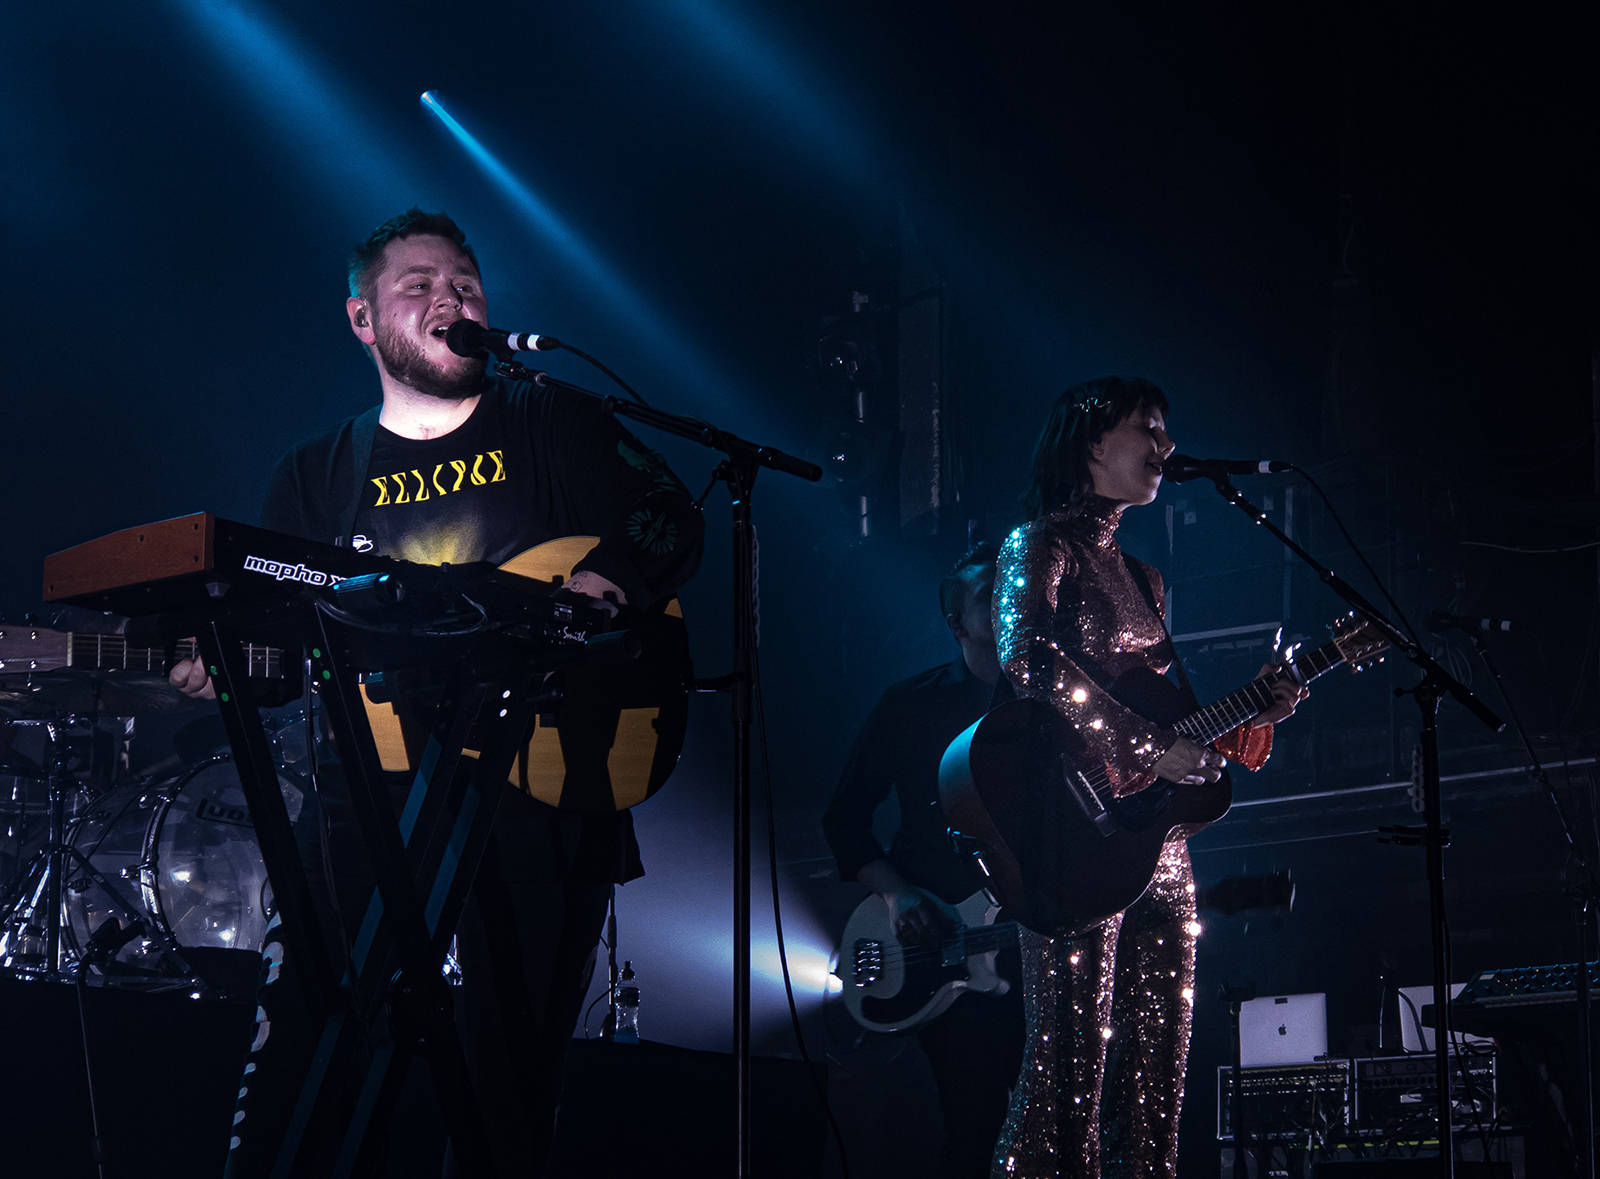 omam2019 - Of Monsters & Men